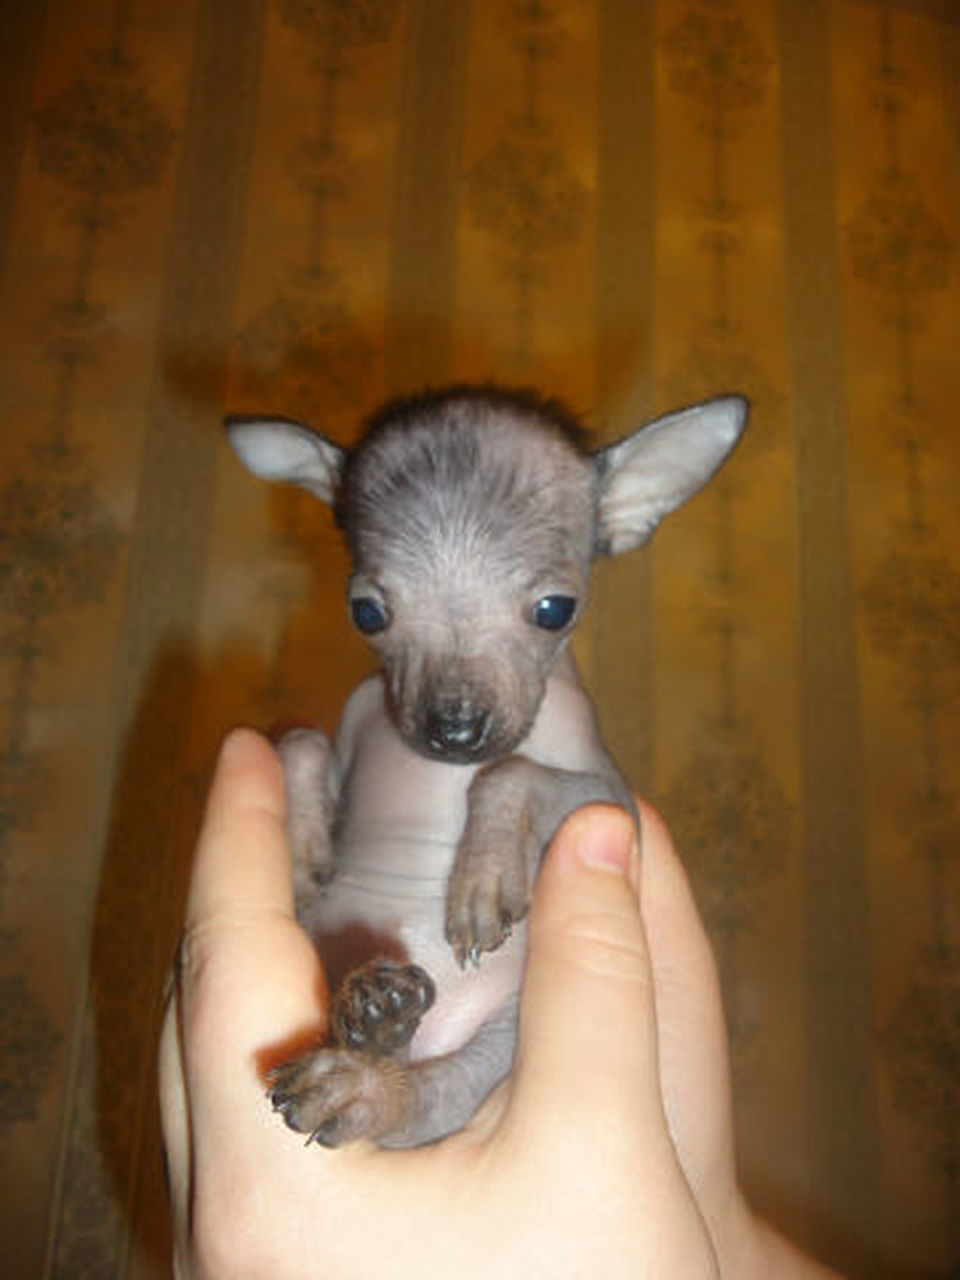 human hand, human body part, pets, animal, holding, one person, one animal, domestic animals, people, animal themes, dog, indoors, young animal, close-up, cute, adult, adults only, mammal, day